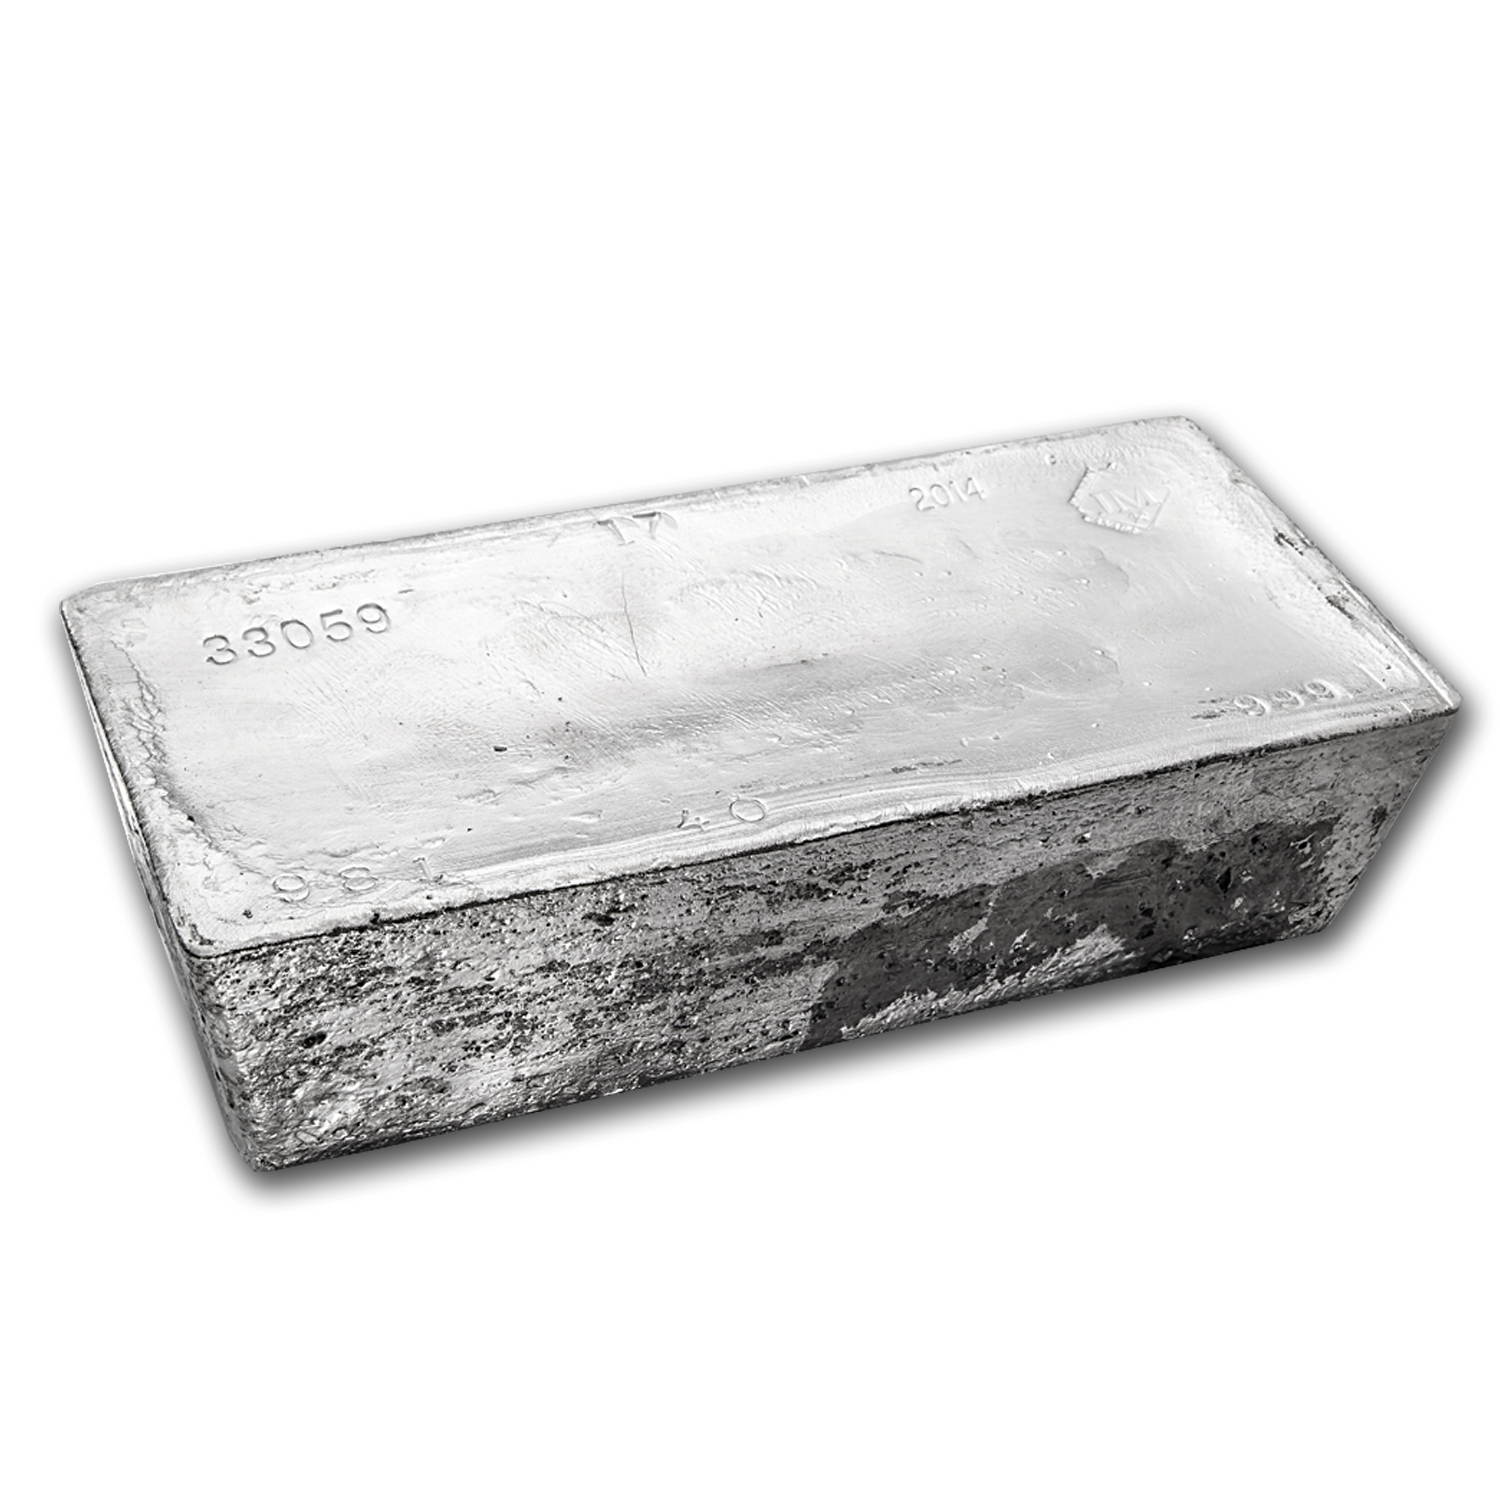 983.70 oz Silver Bar - Johnson Matthey